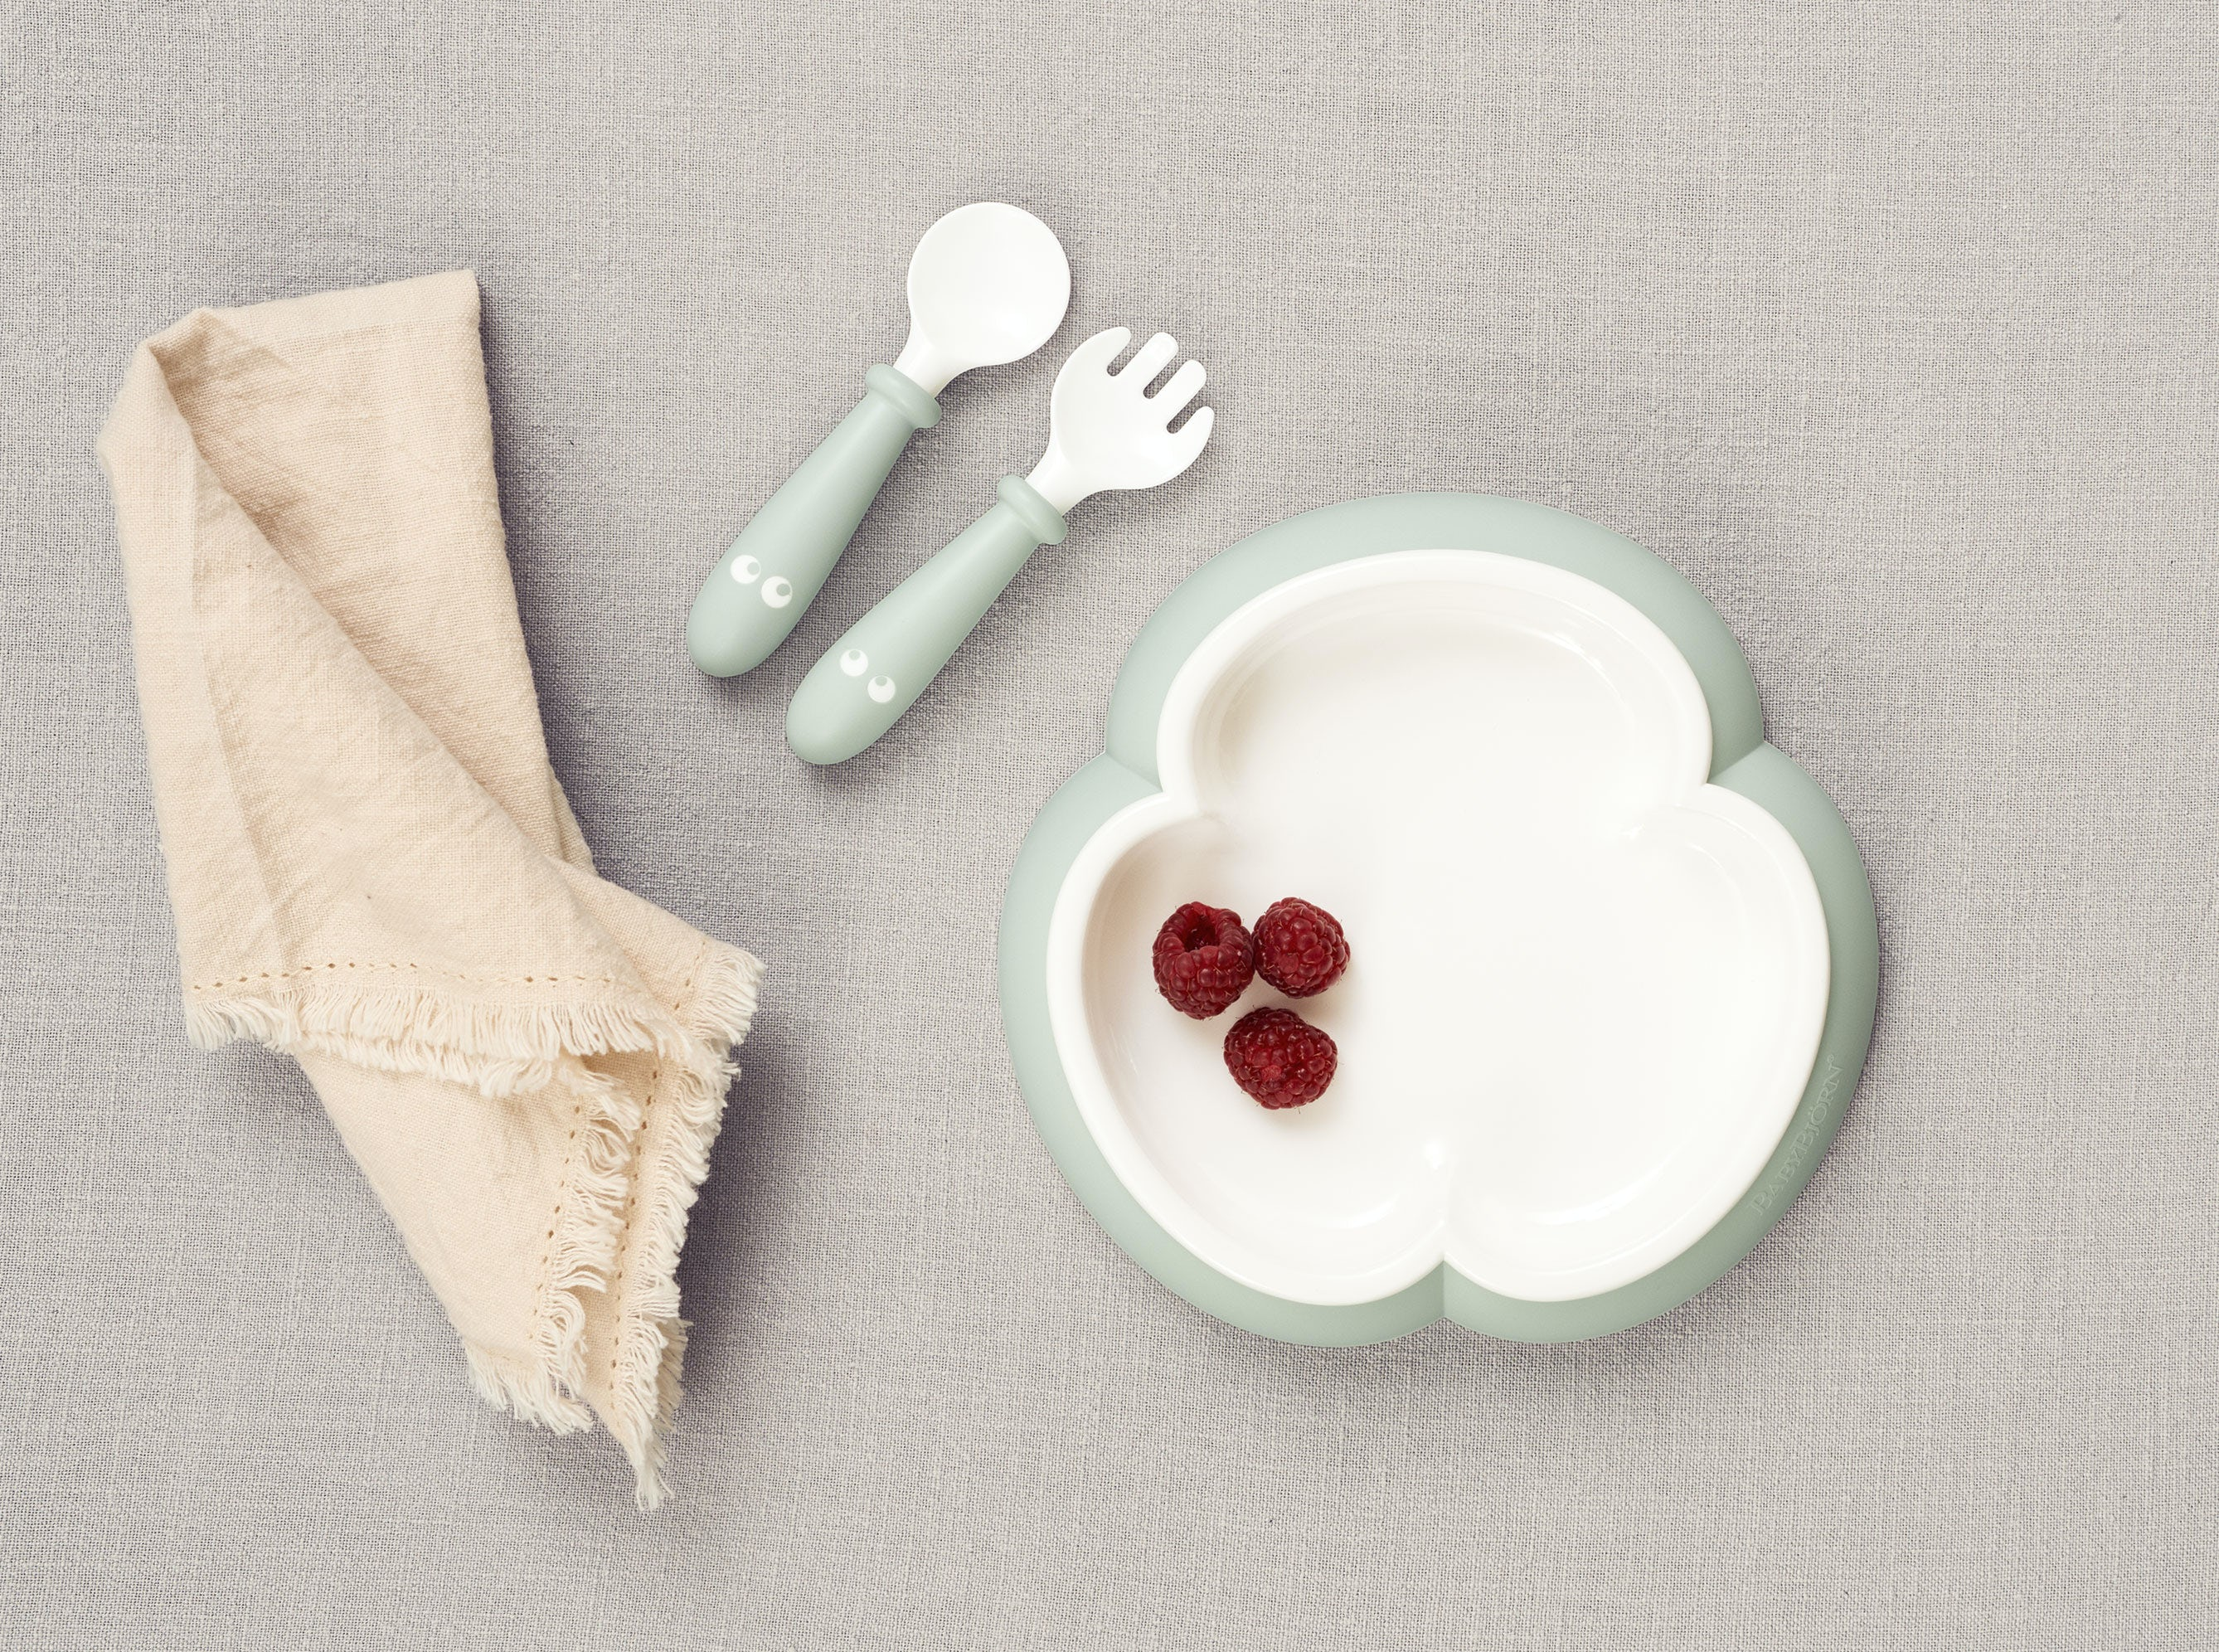 Baby Plate, Spoon and Fork - BABYBJORN